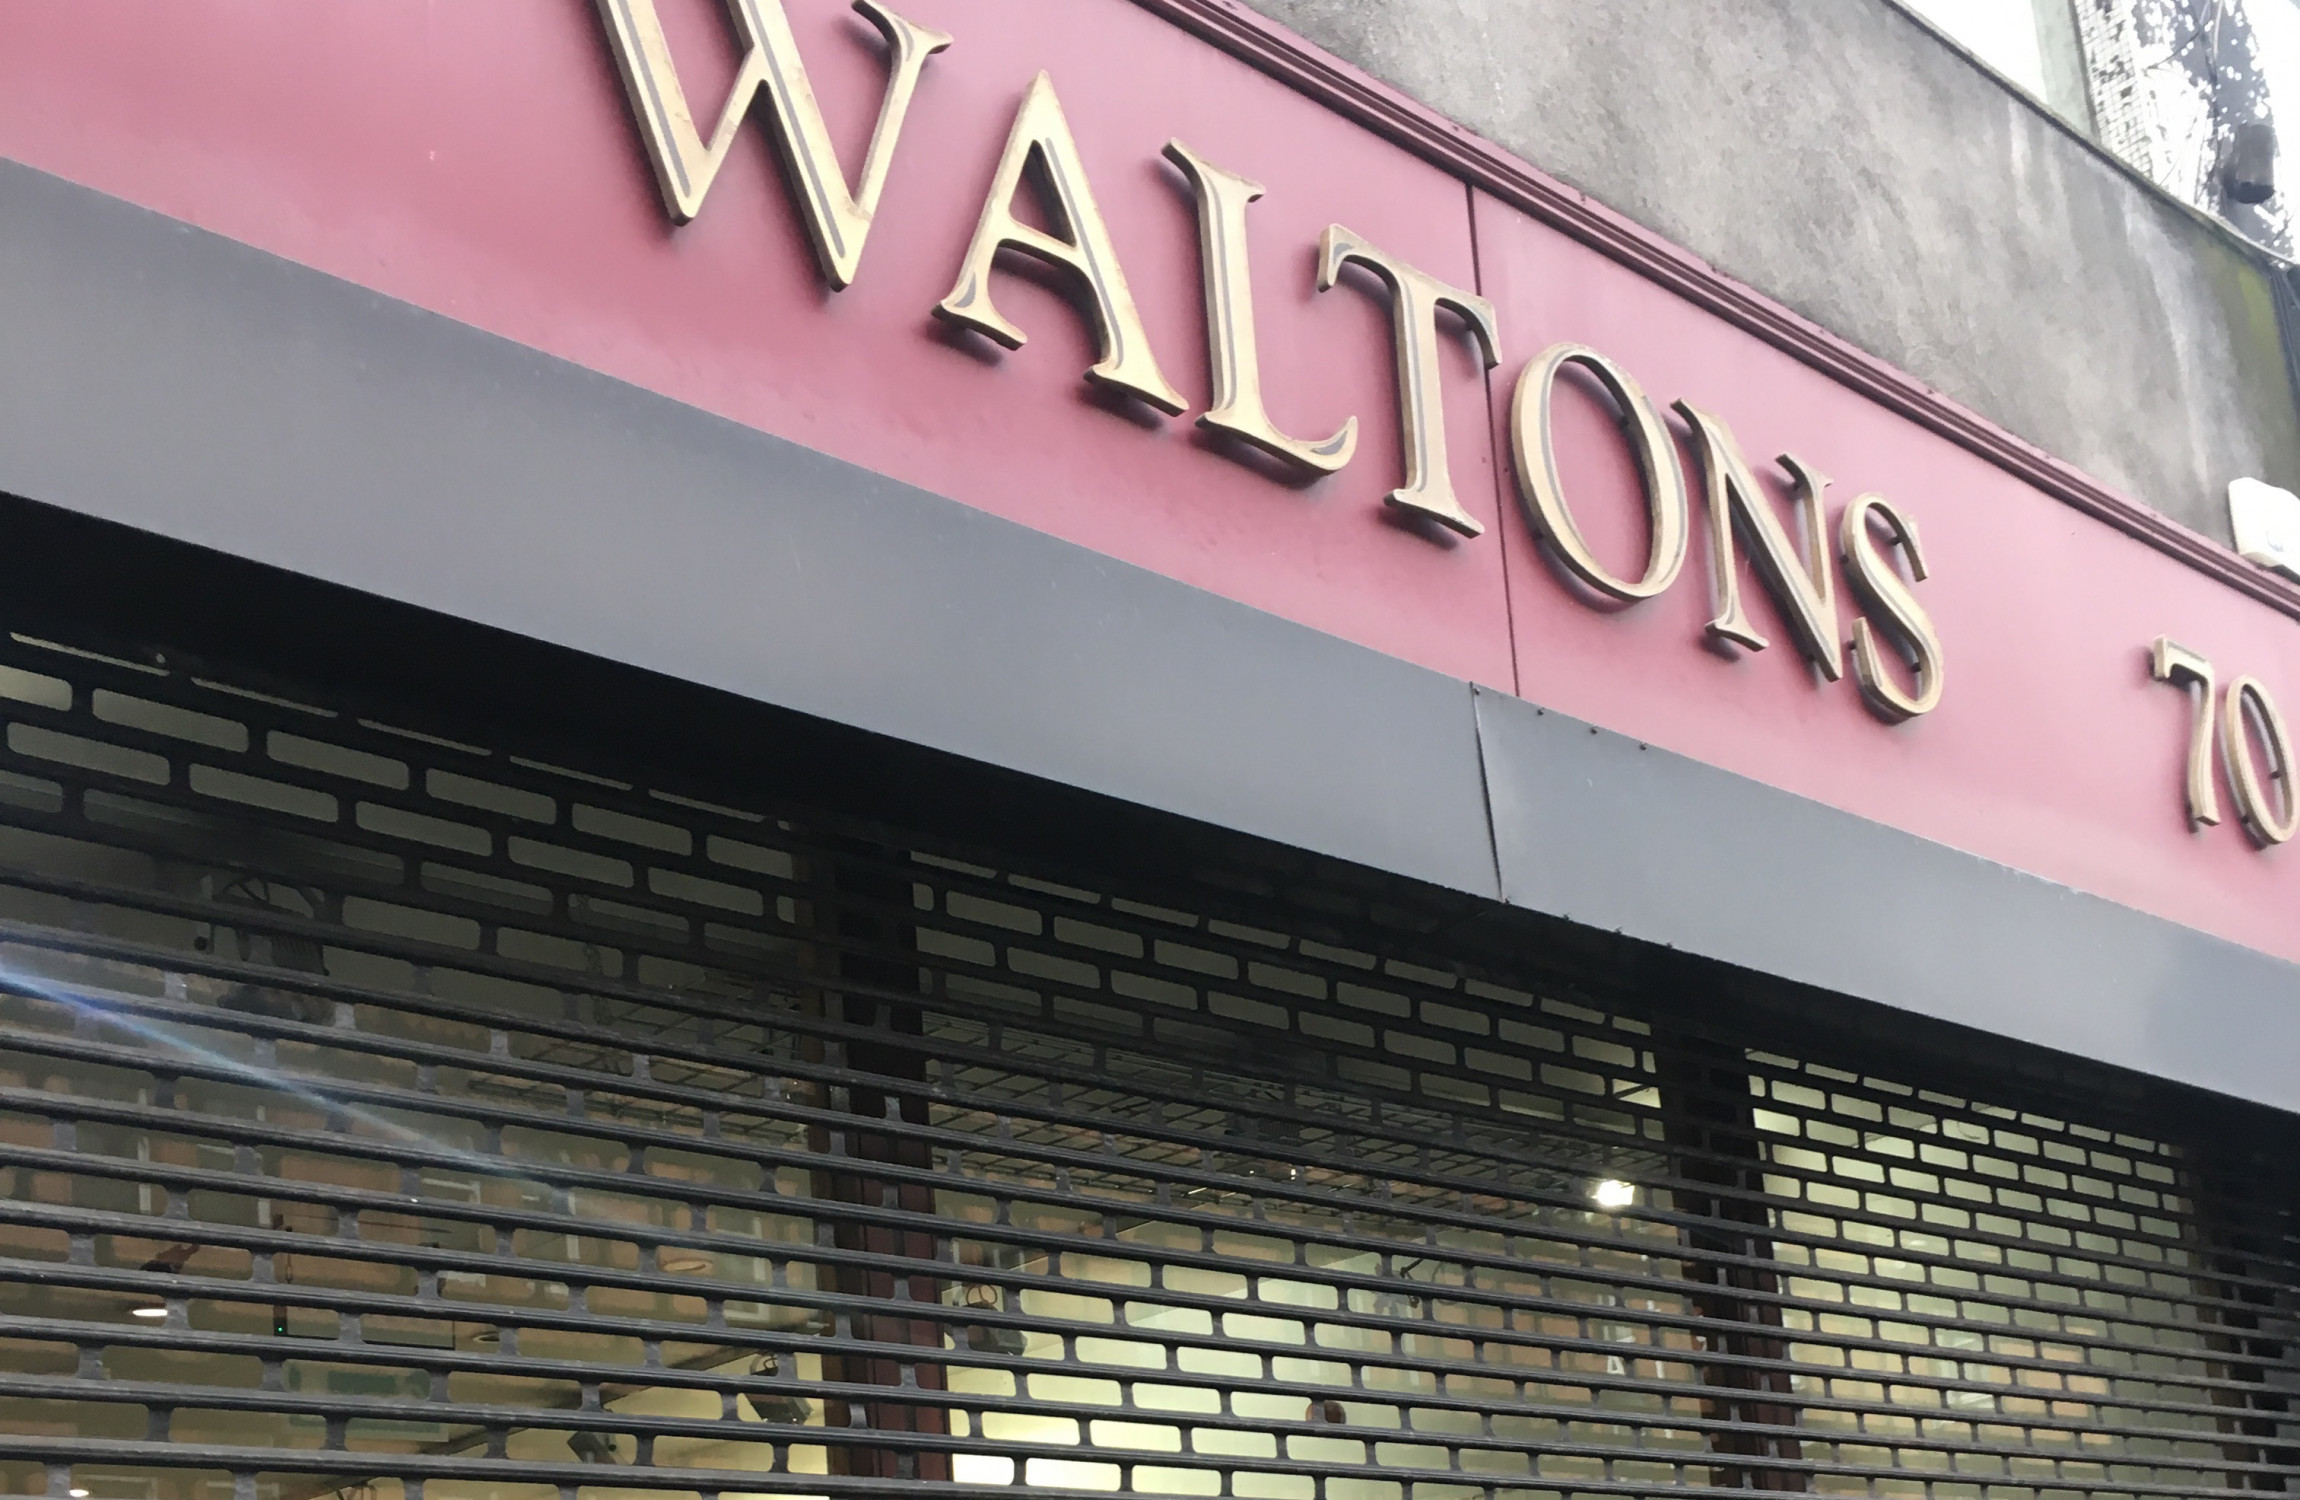 Legendary music shop, Waltons is closing down its iconic building